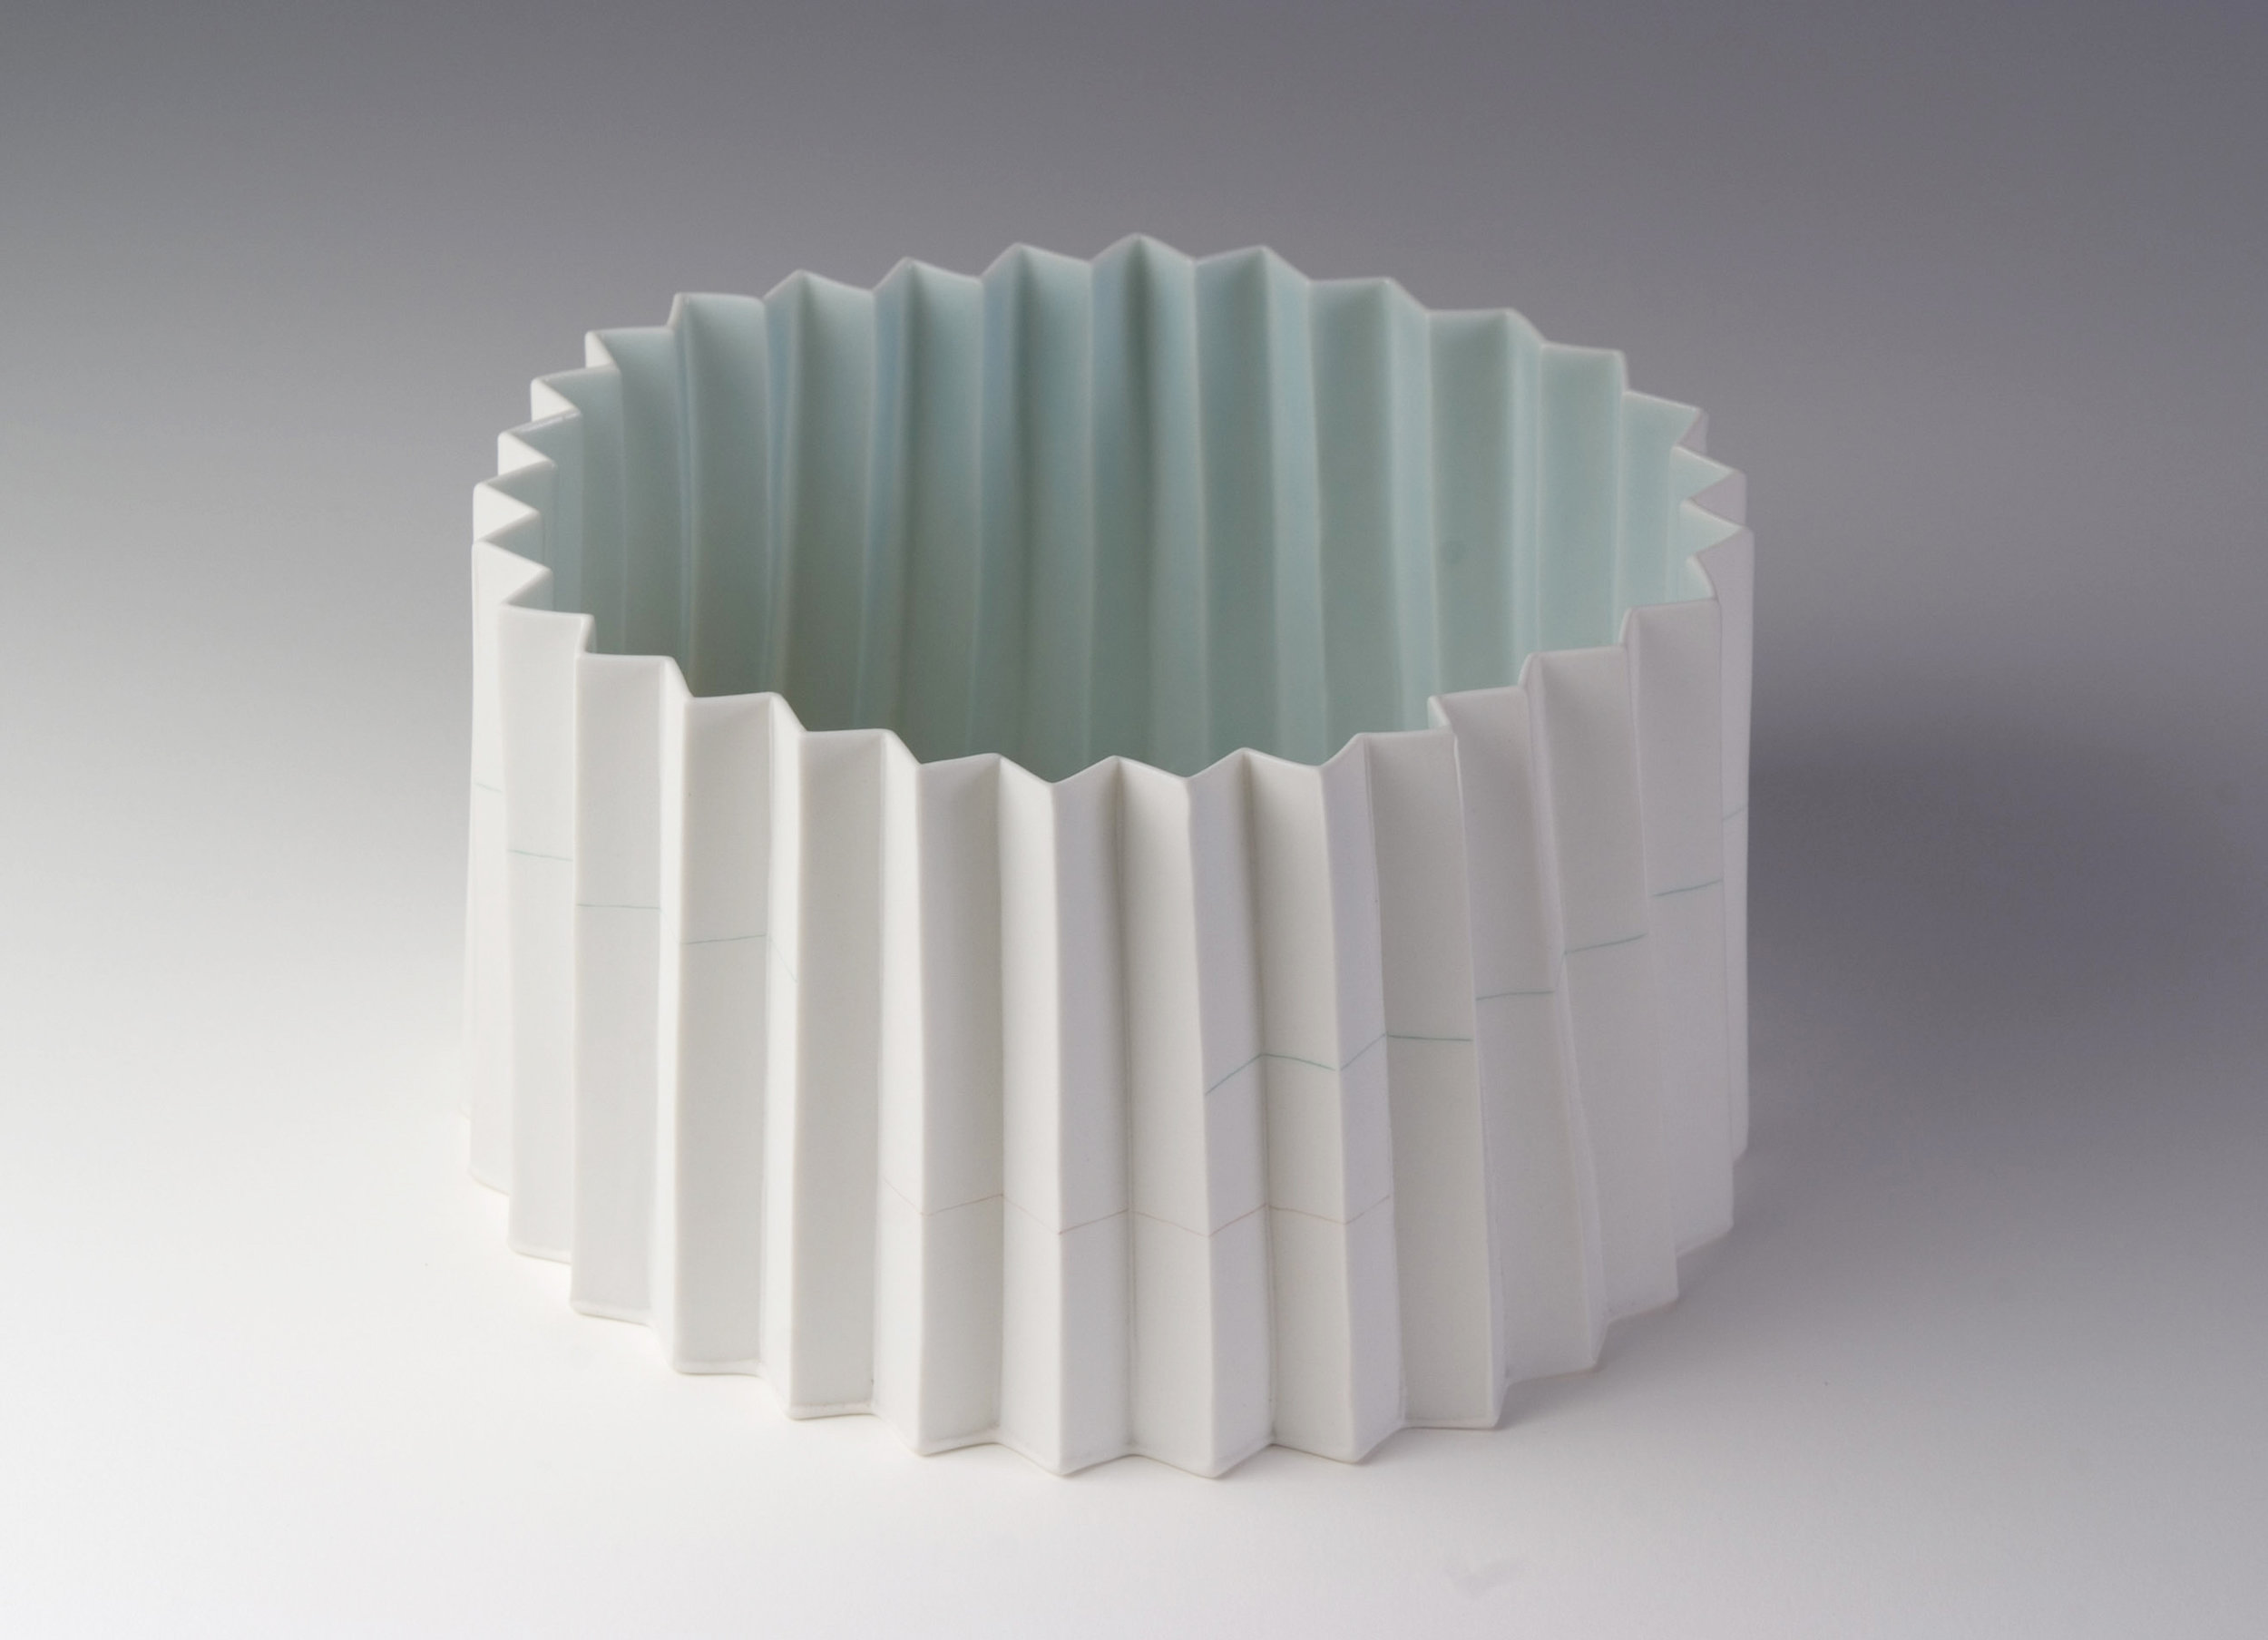 Kenji Uranishi,  Pleated bowl  2009, porcelain with inlaid slip and celadon glaze, 11.8 x 20.0cm, Les Renfrew Bequest 2009, Newcastle Art Gallery collection